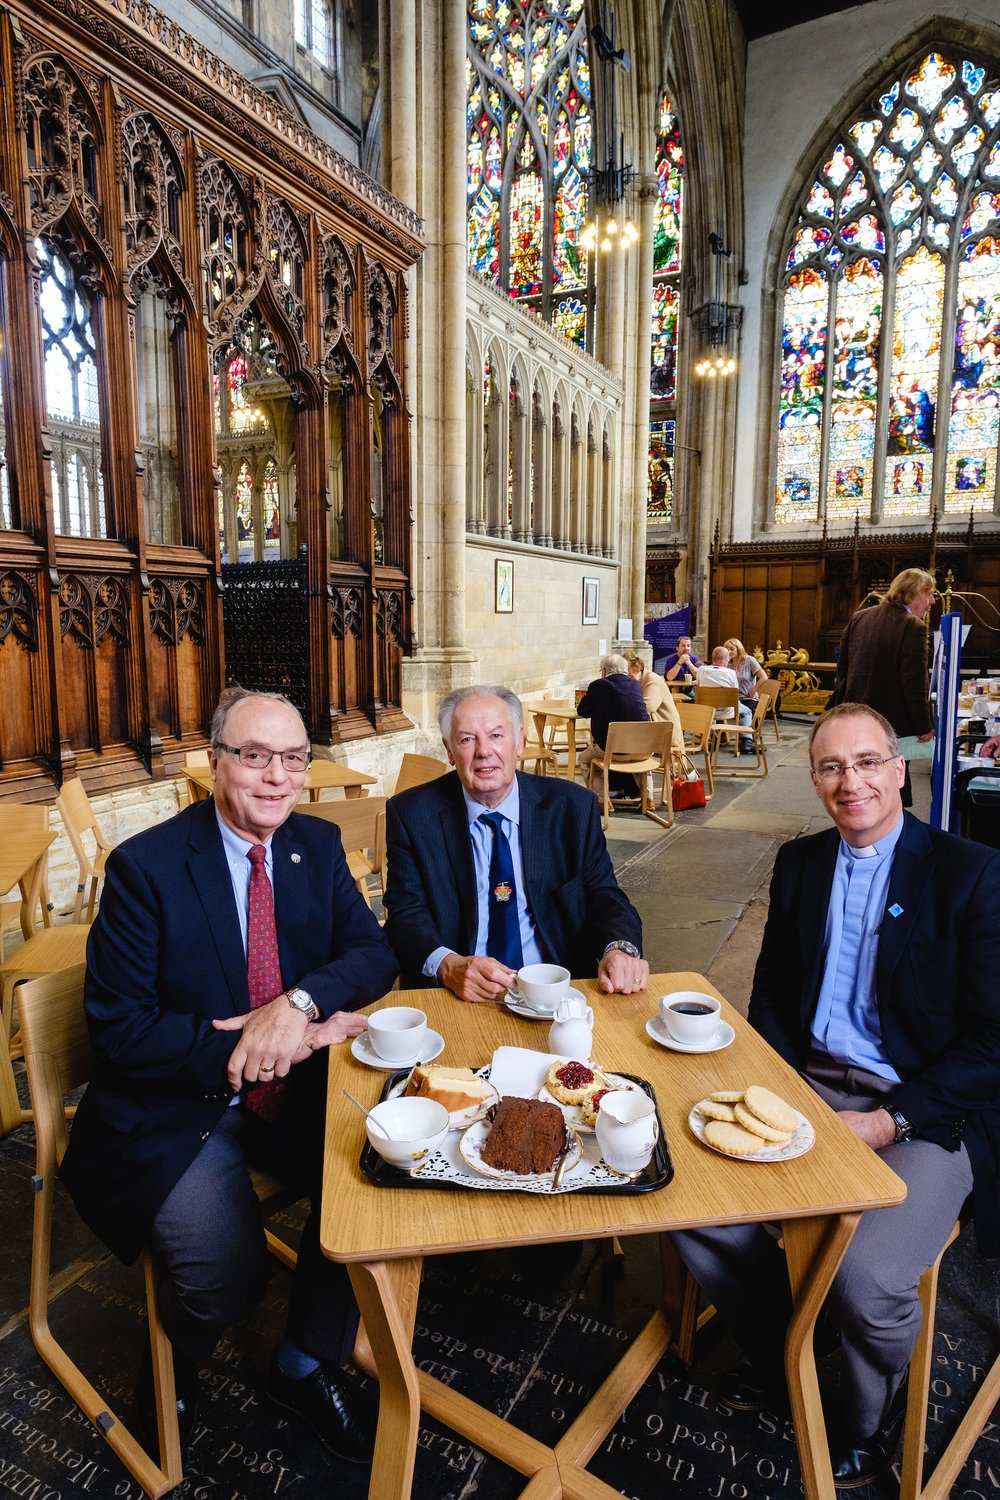 ull Minster supporters Robin Mason, left, and Captain Dennis Robinson enjoy afternoon tea with Vicar Neal Barnes in the church's Café Trinity, which has been refurnished with chairs funded by donors.